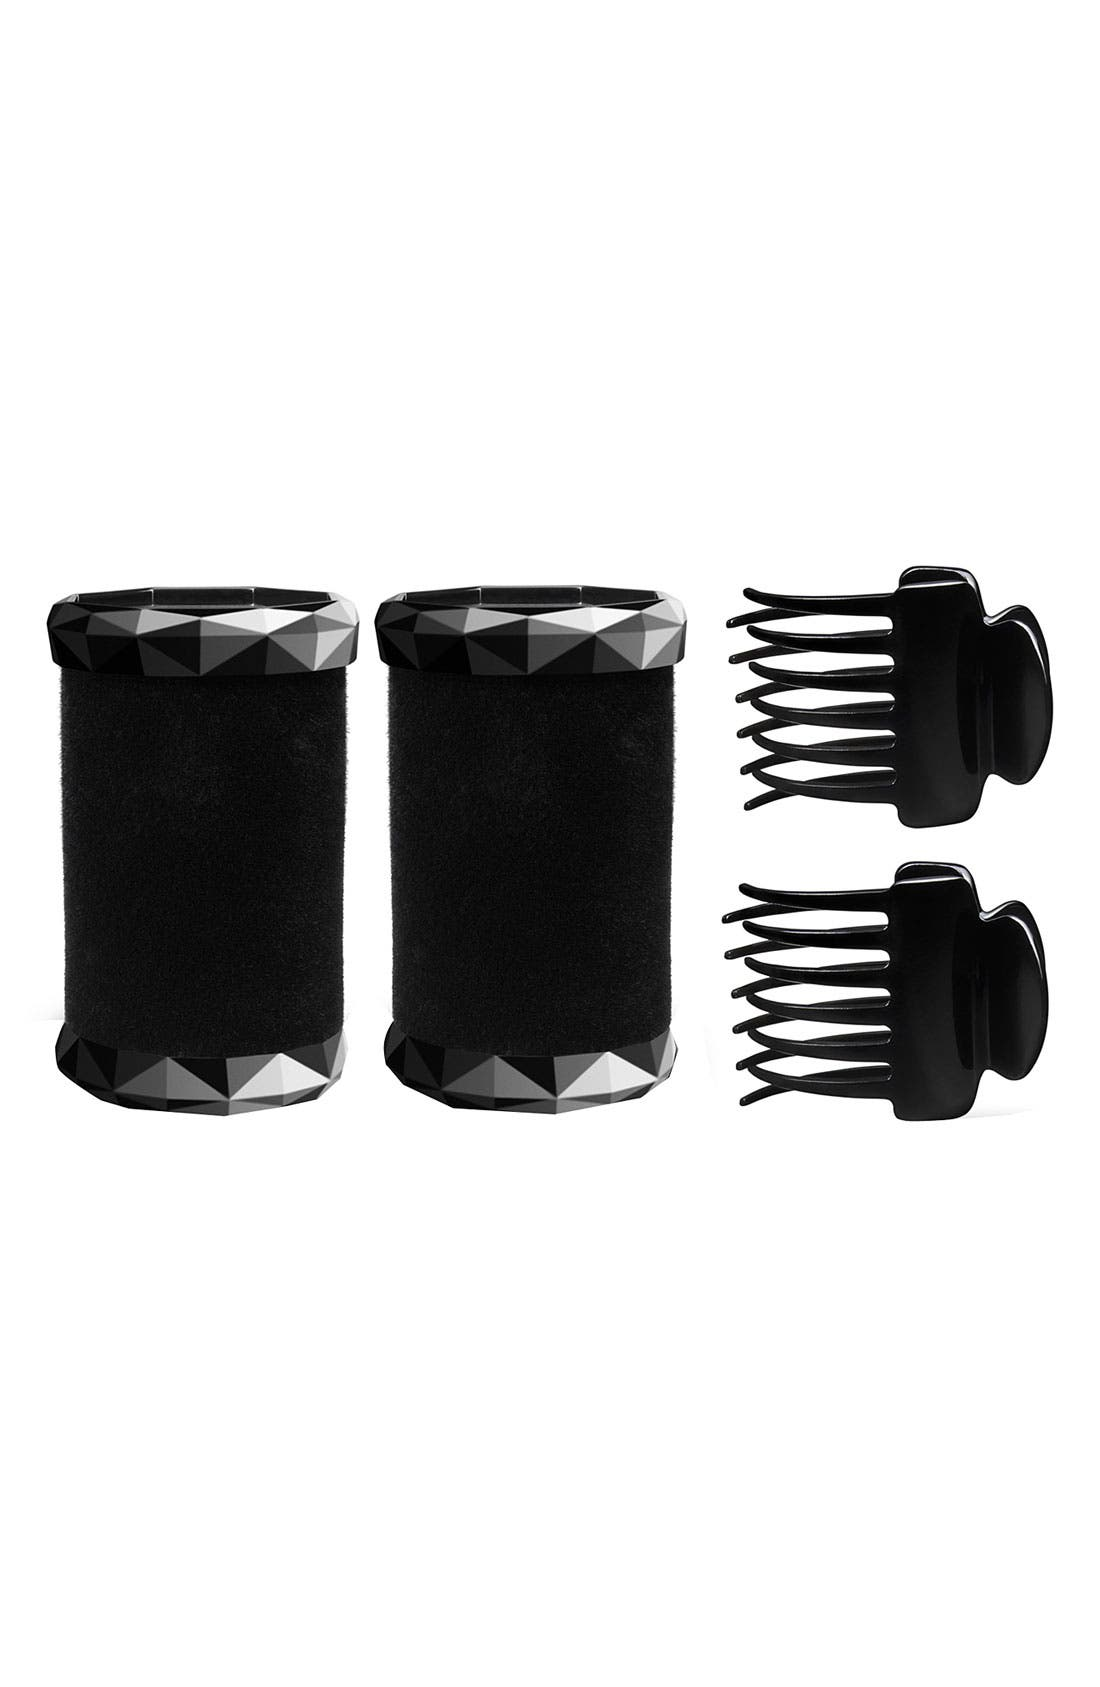 Main Image - T3 Voluminous Hot Rollers & Clips (1.5 inch) (2-Pack)